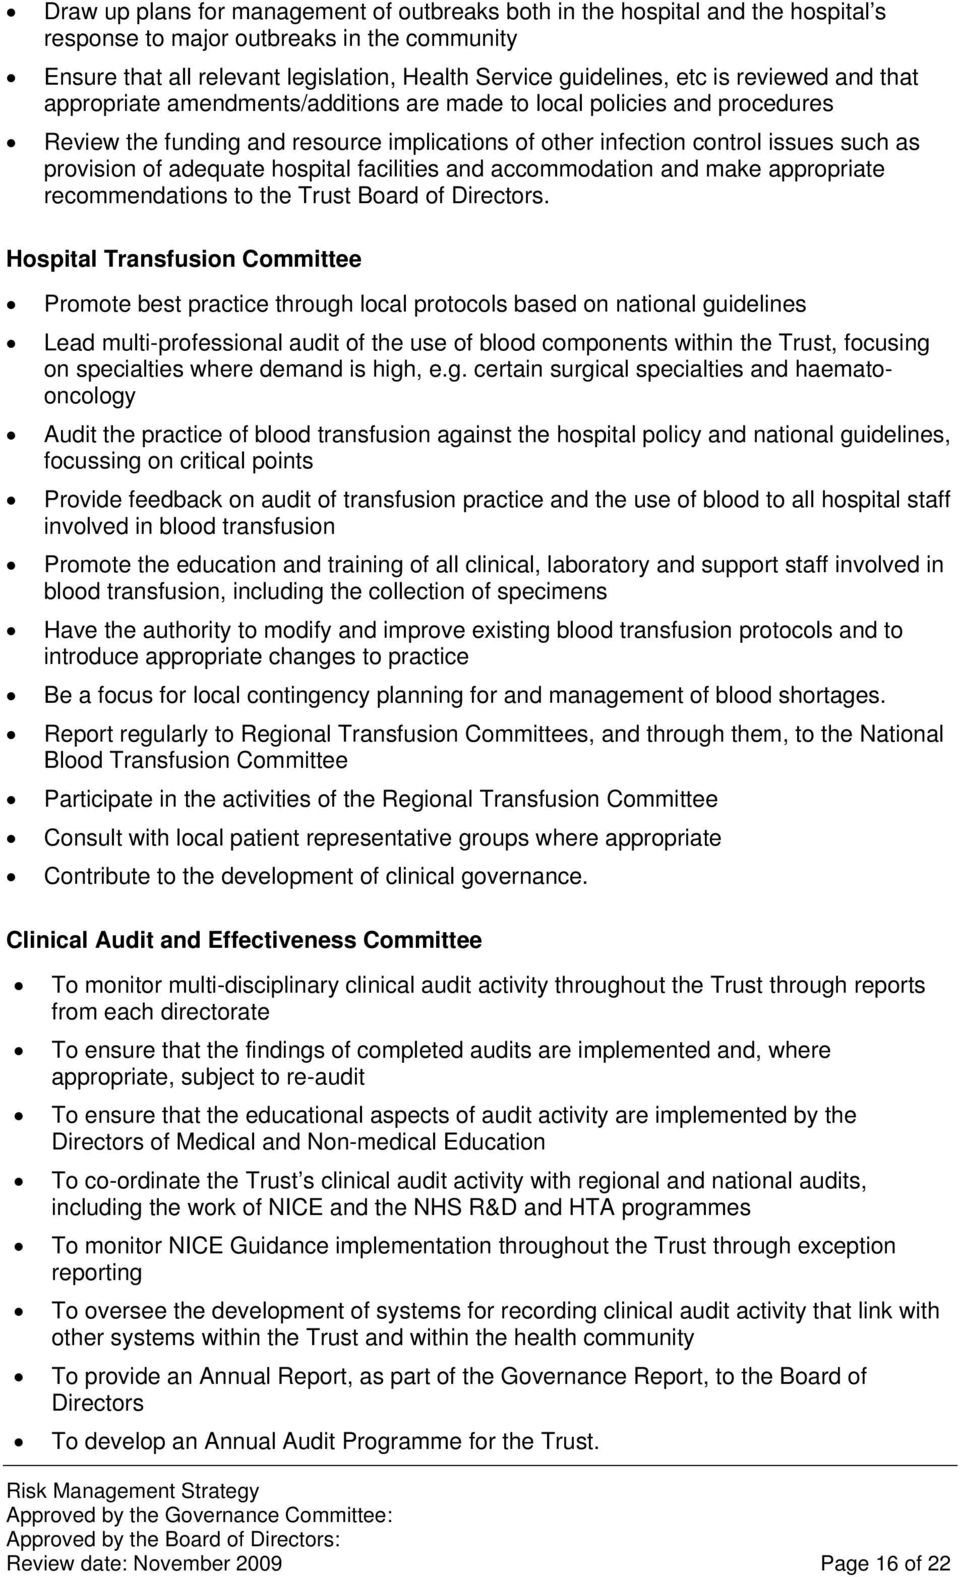 adequate hospital facilities and accommodation and make appropriate recommendations to the Trust Board of Directors.